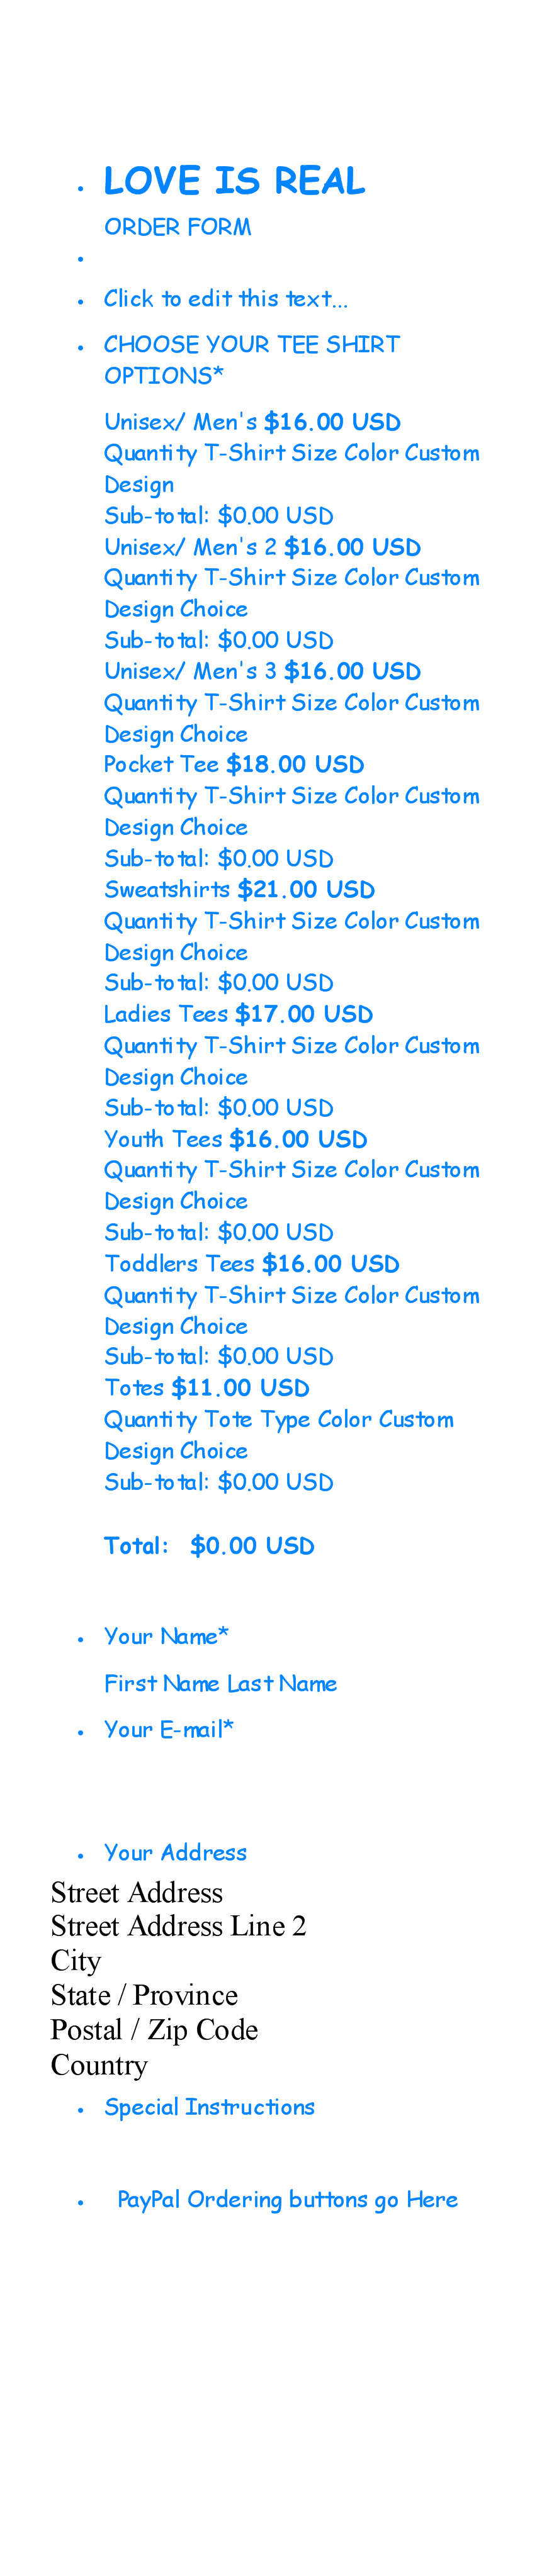 Order Form For Shirts Order Form Style Size Choices